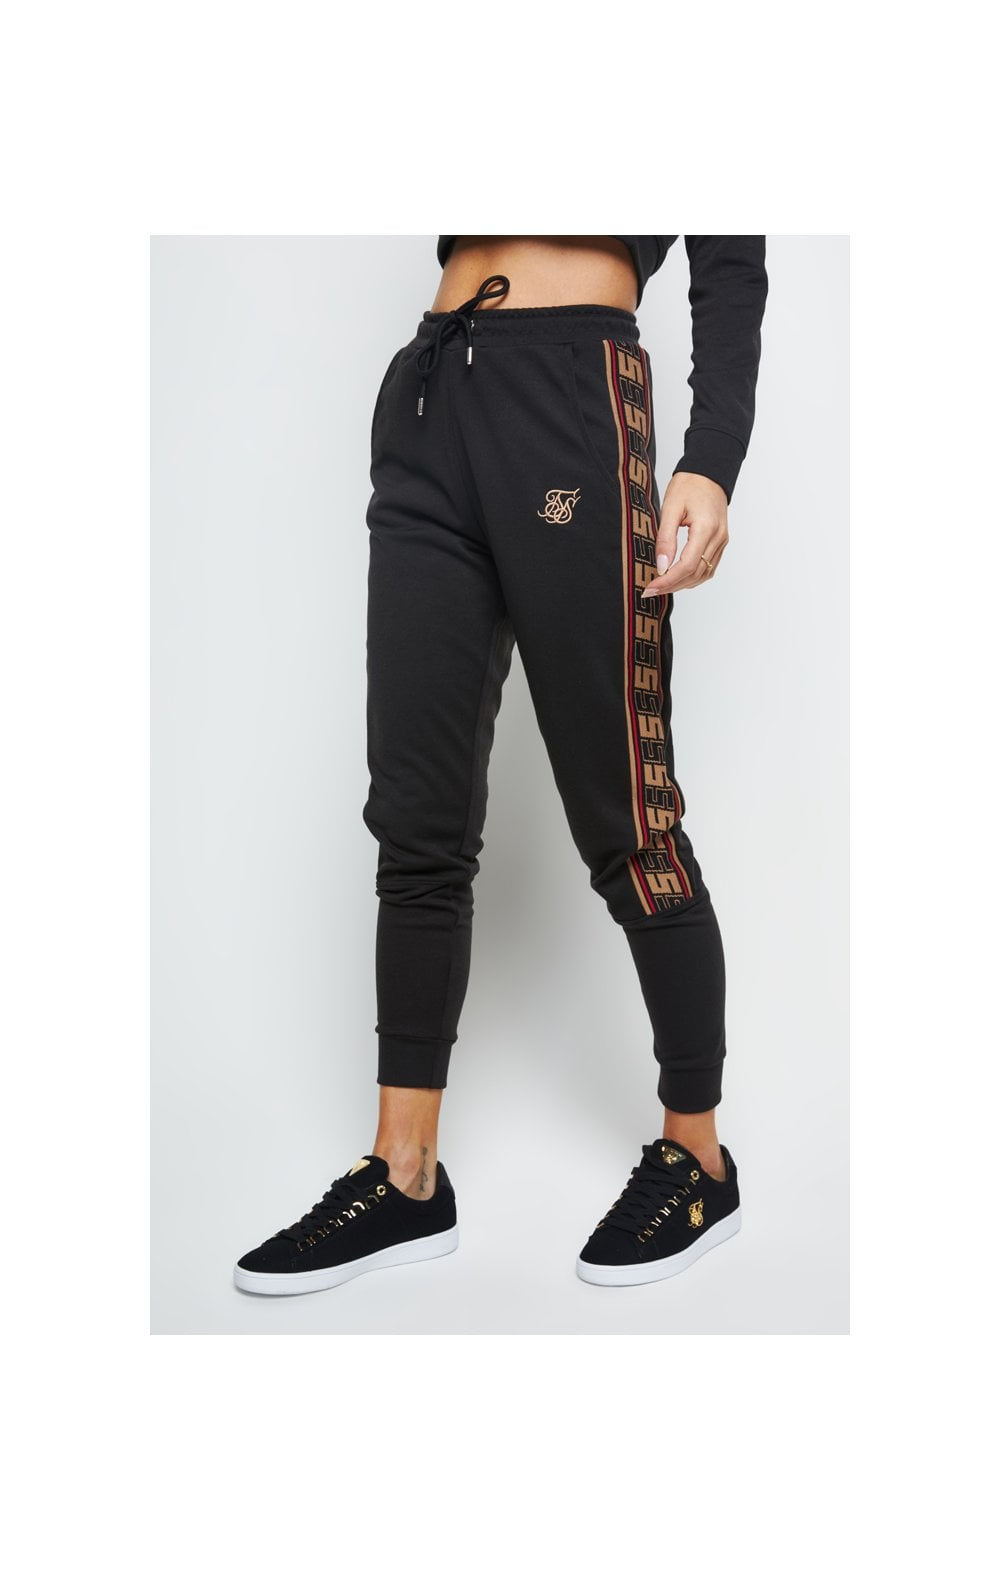 SikSilk Distinction Track Pants - Black (2)